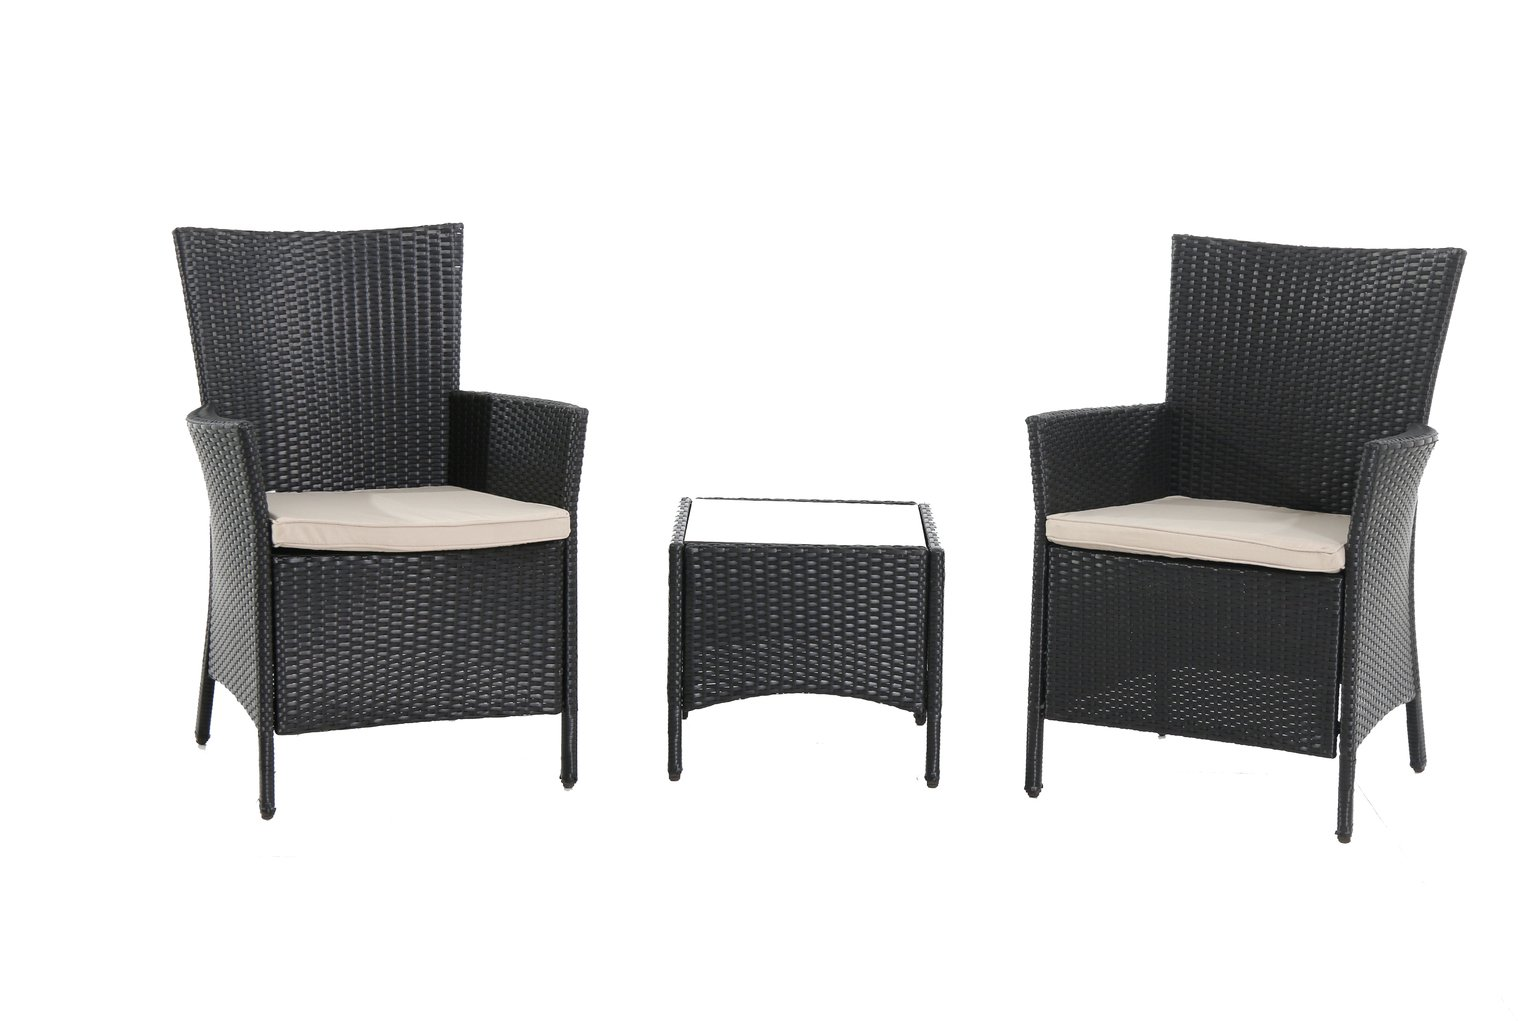 Bali Set of 2 Armchairs with Cushions